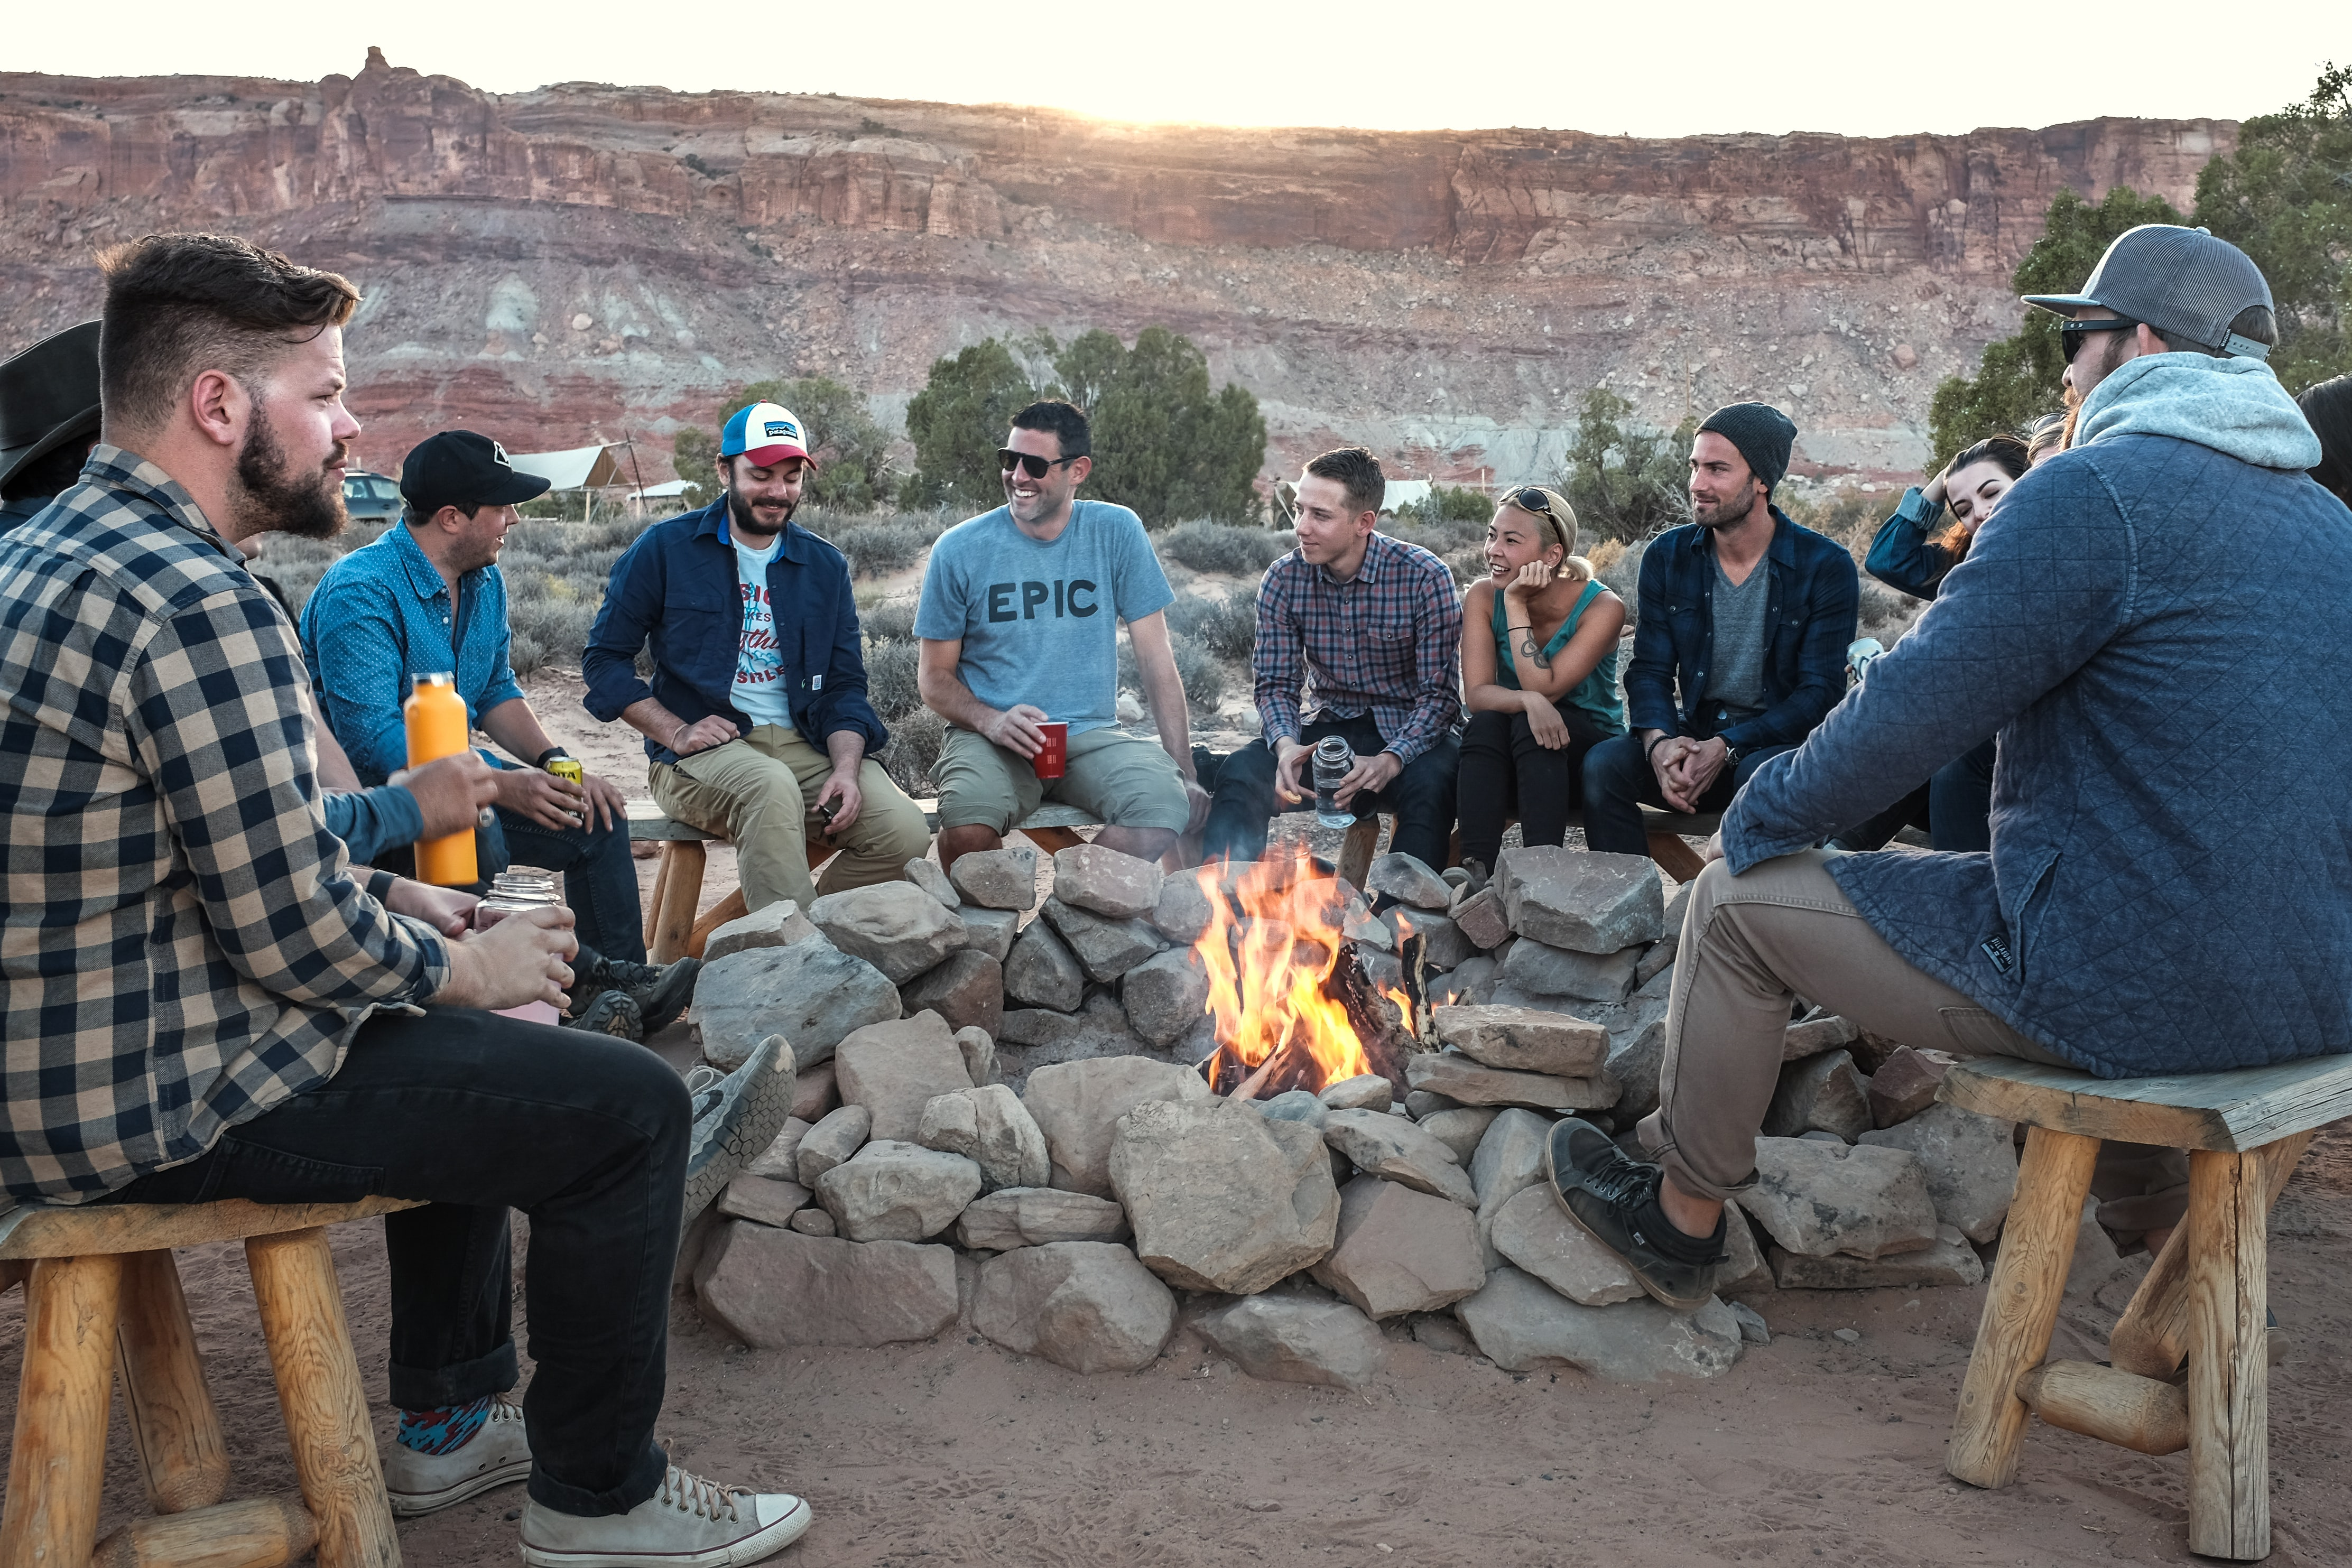 A group of smiling young people sitting around a fire pit in the mountains